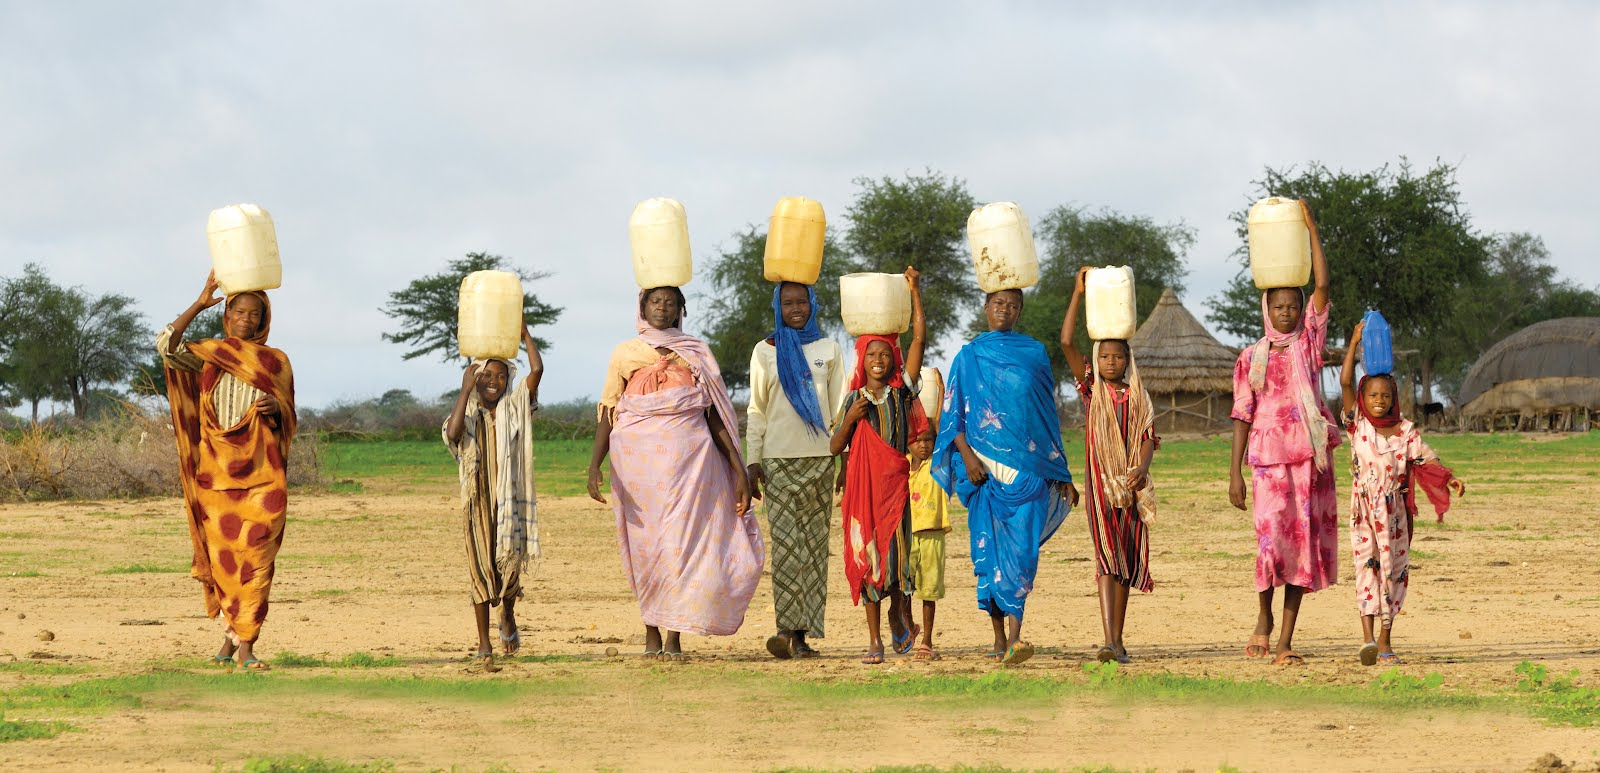 Women & Girls Carry Water Home in Darfur